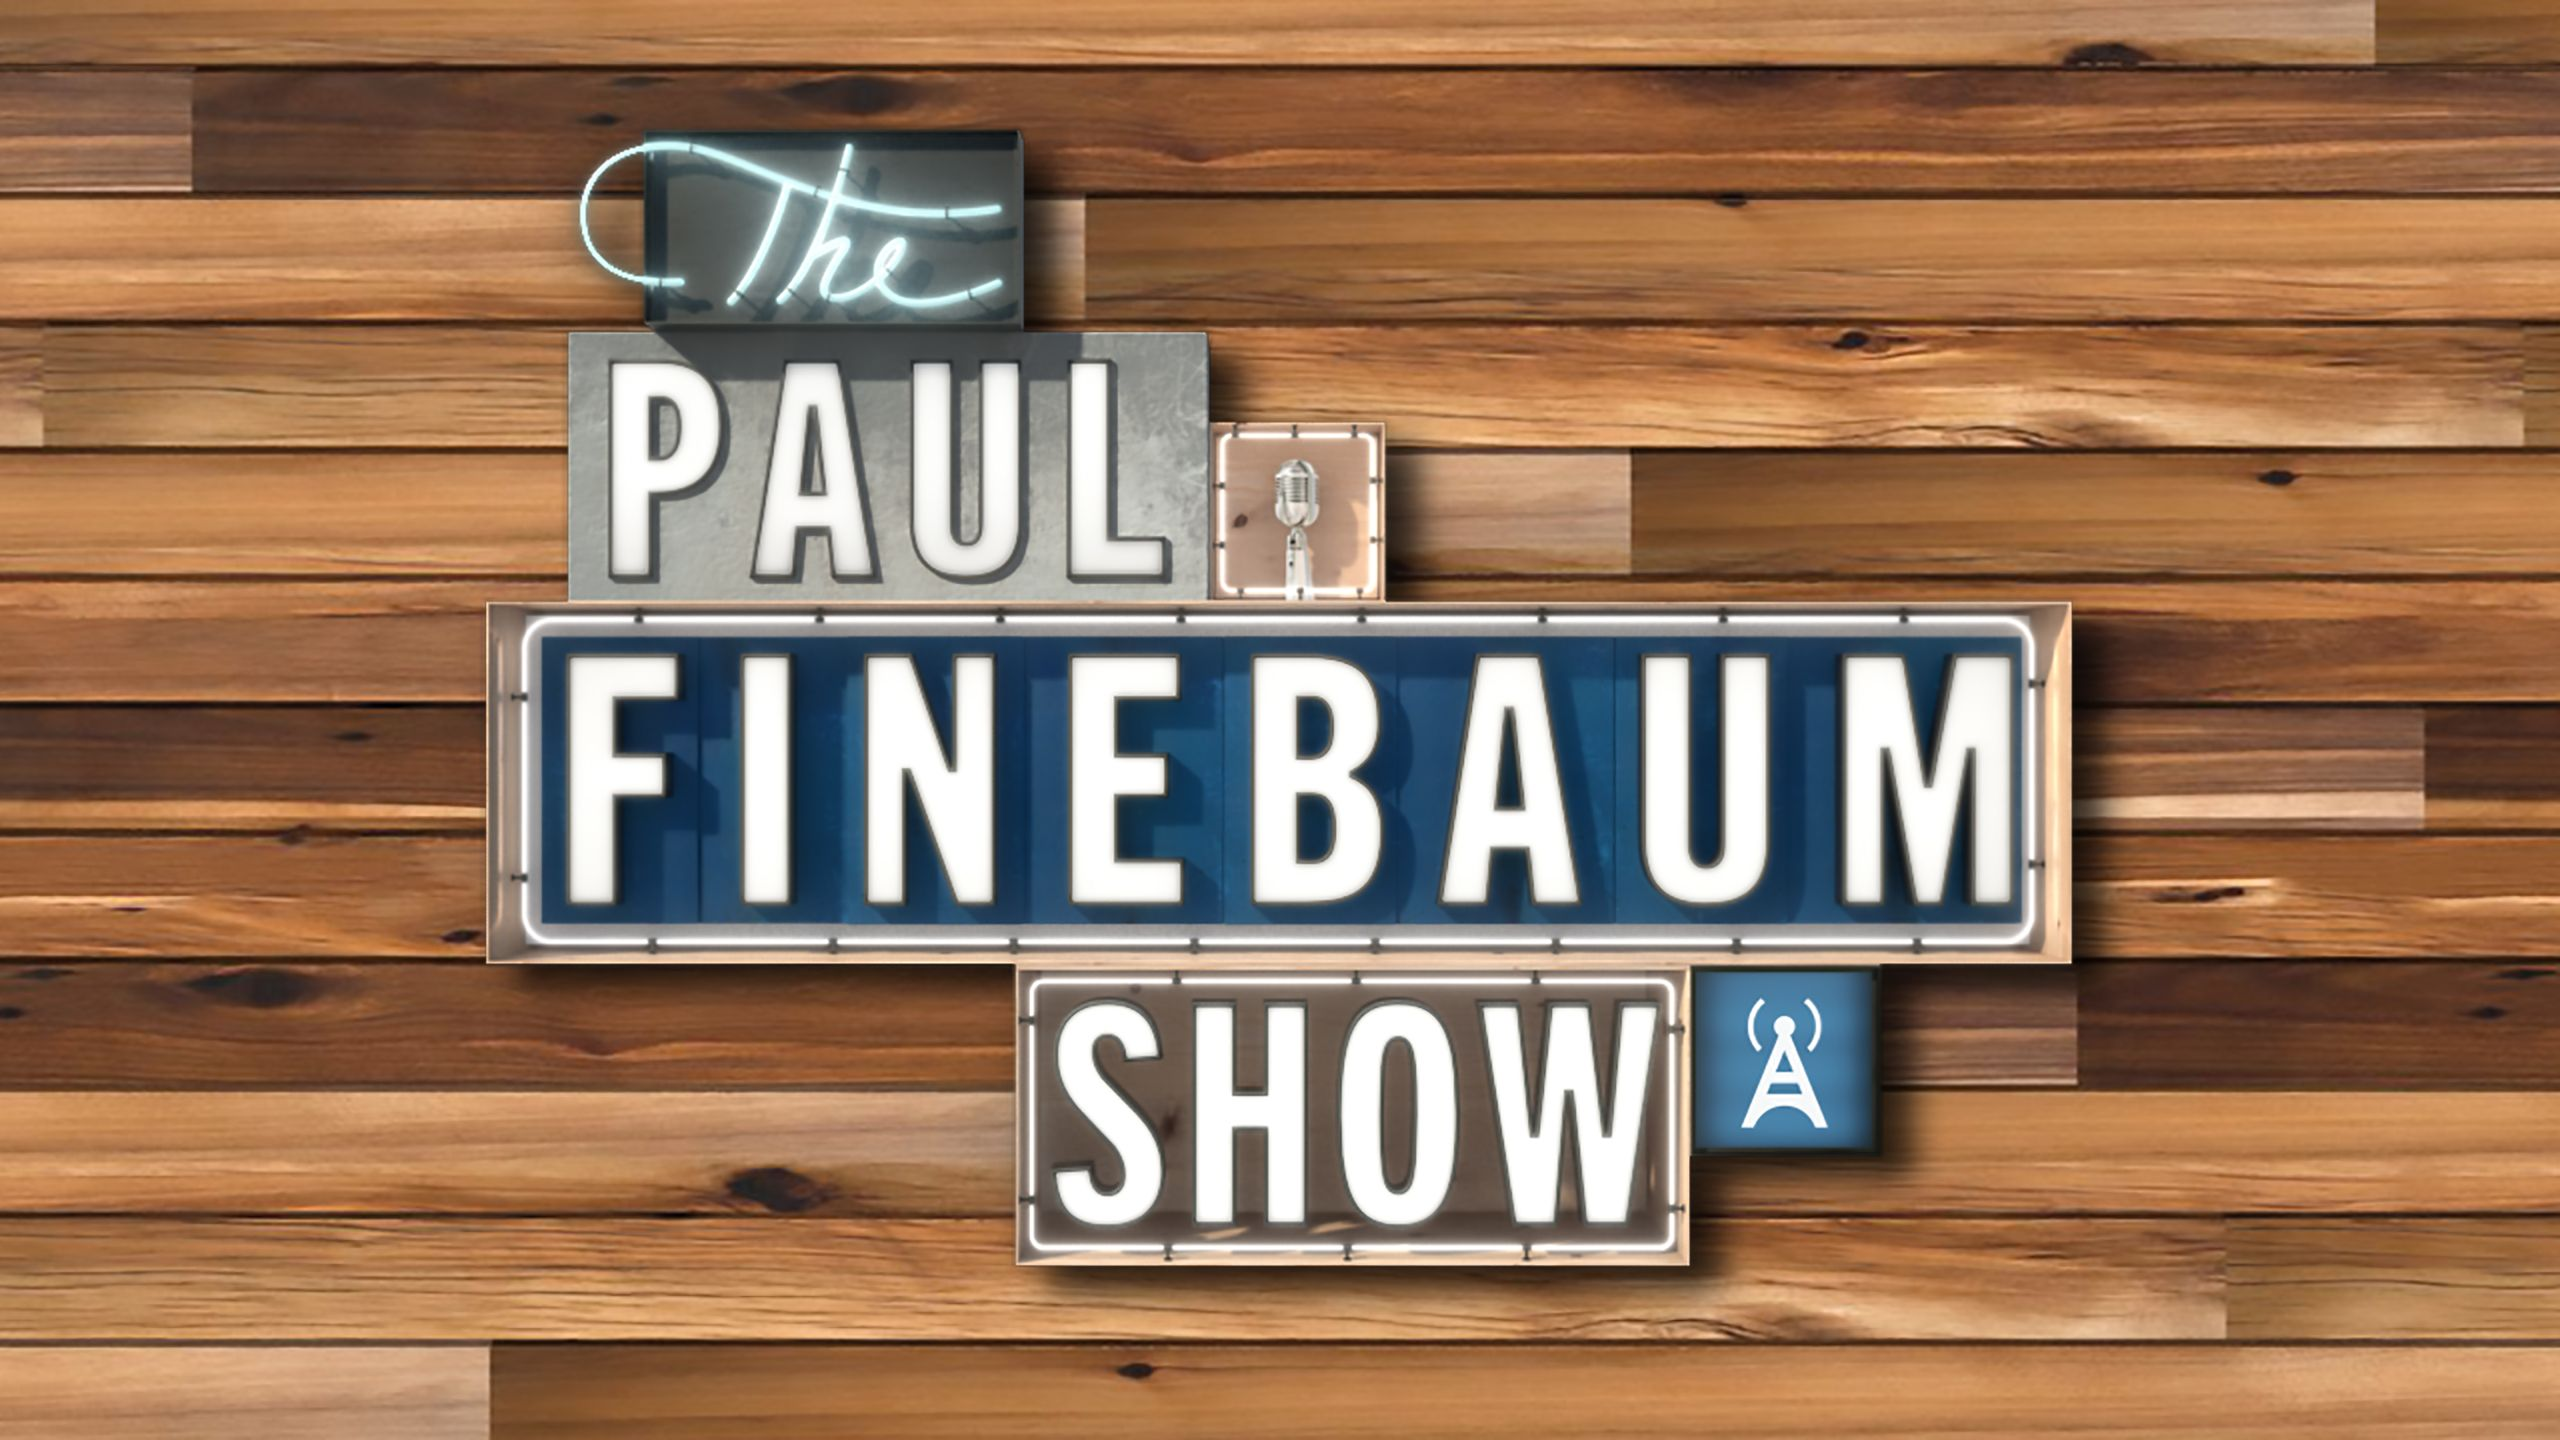 Fri, 4/20 - The Paul Finebaum Show